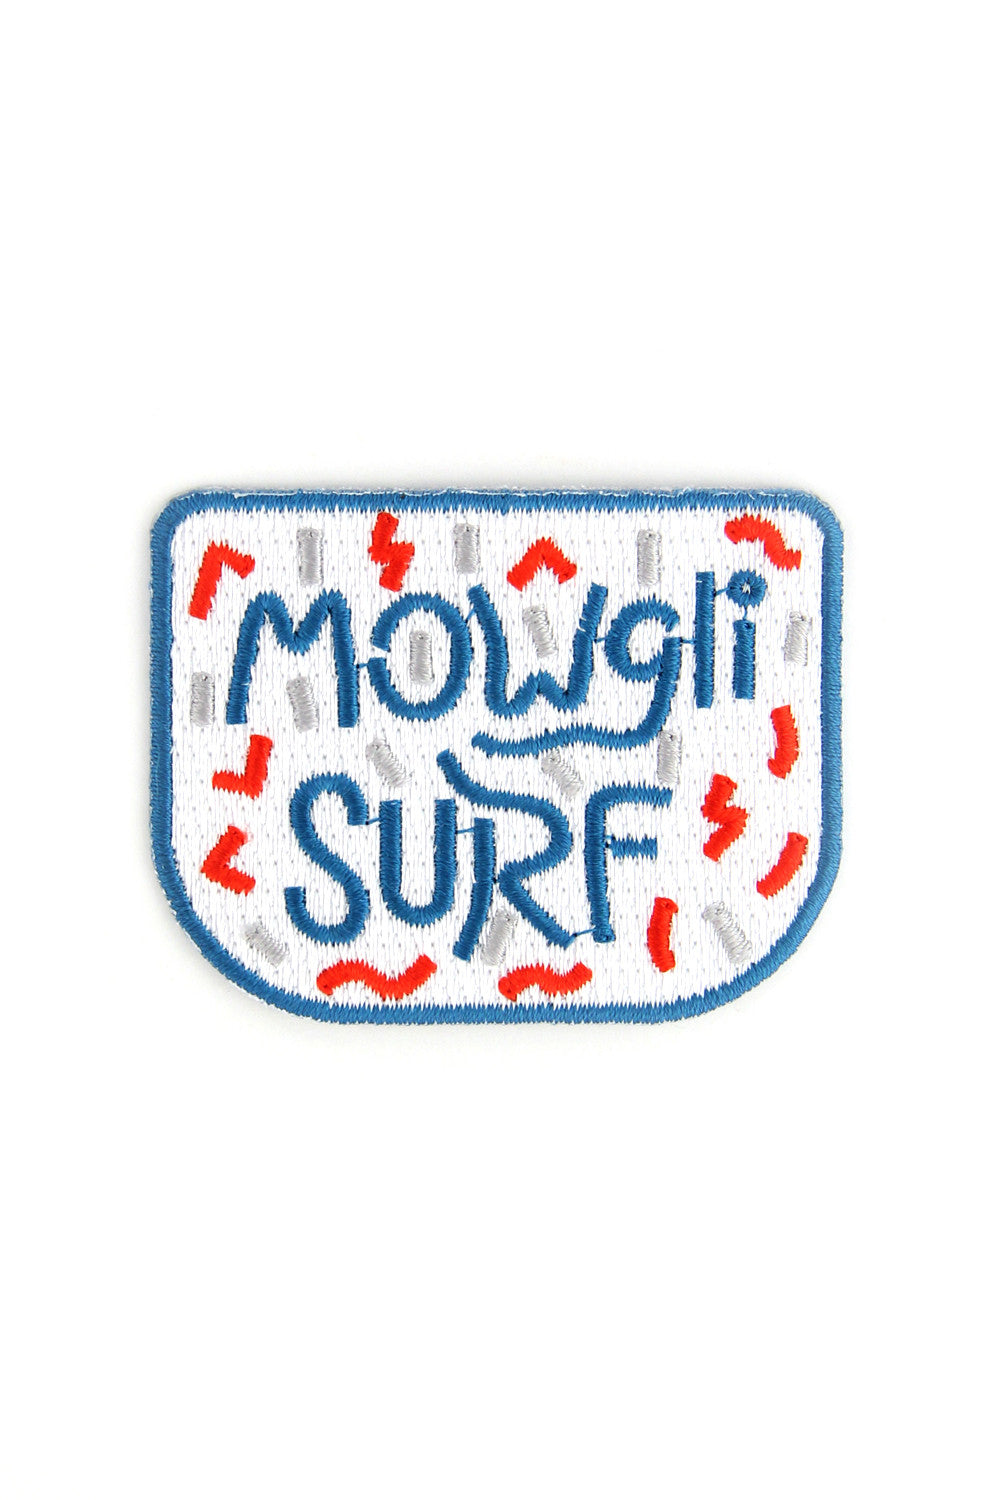 Mowgli Fun- Mokuyobi x Mowgli Iron On Patch